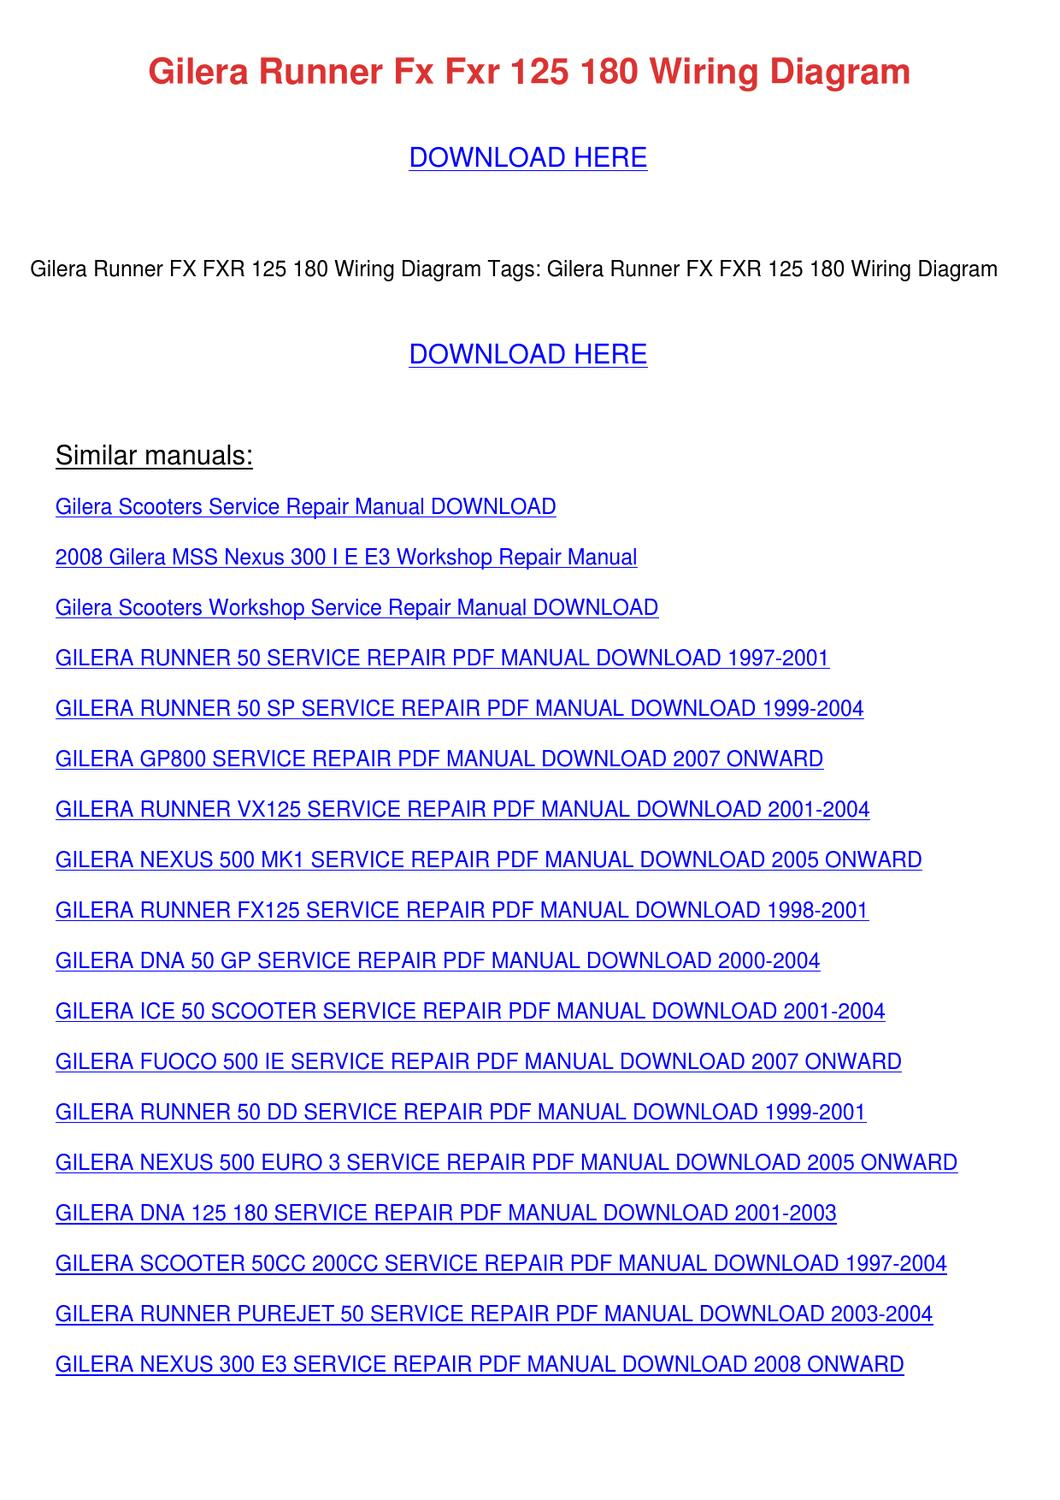 Gilera Runner Fx Fxr 125 180 Wiring Diagram By